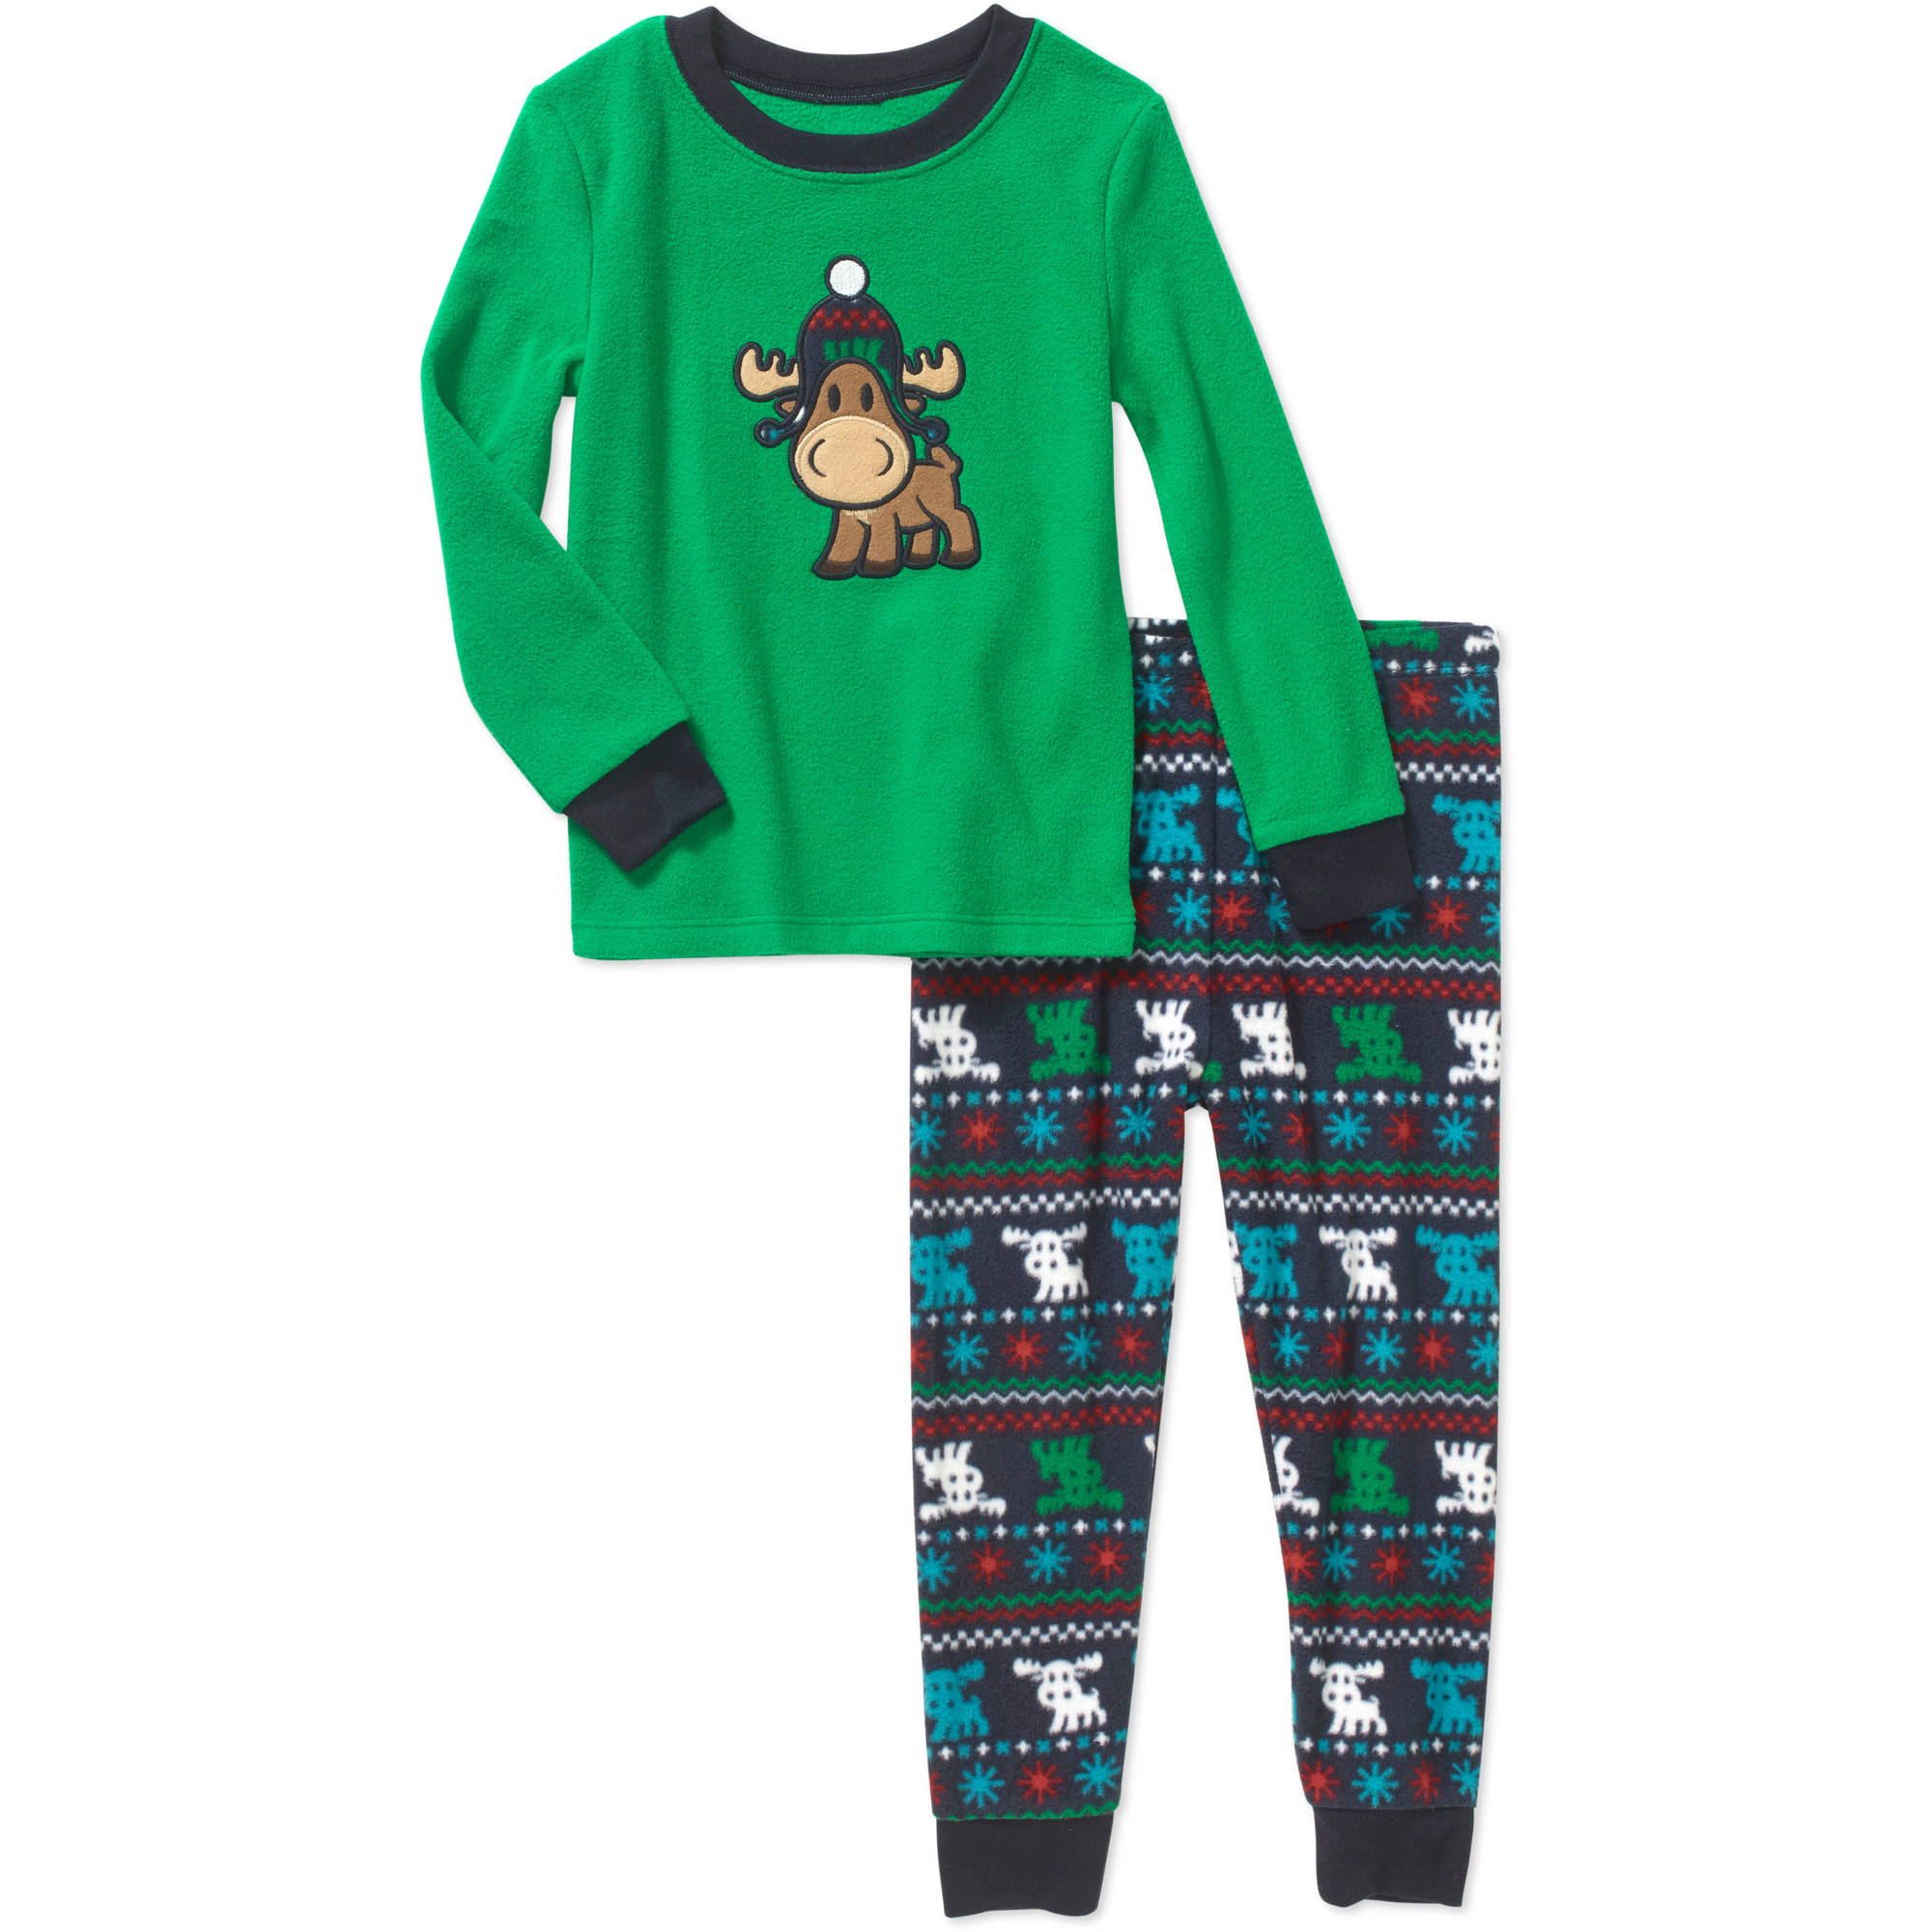 Healthtex Baby Toddler Boy Plush Pajama Set